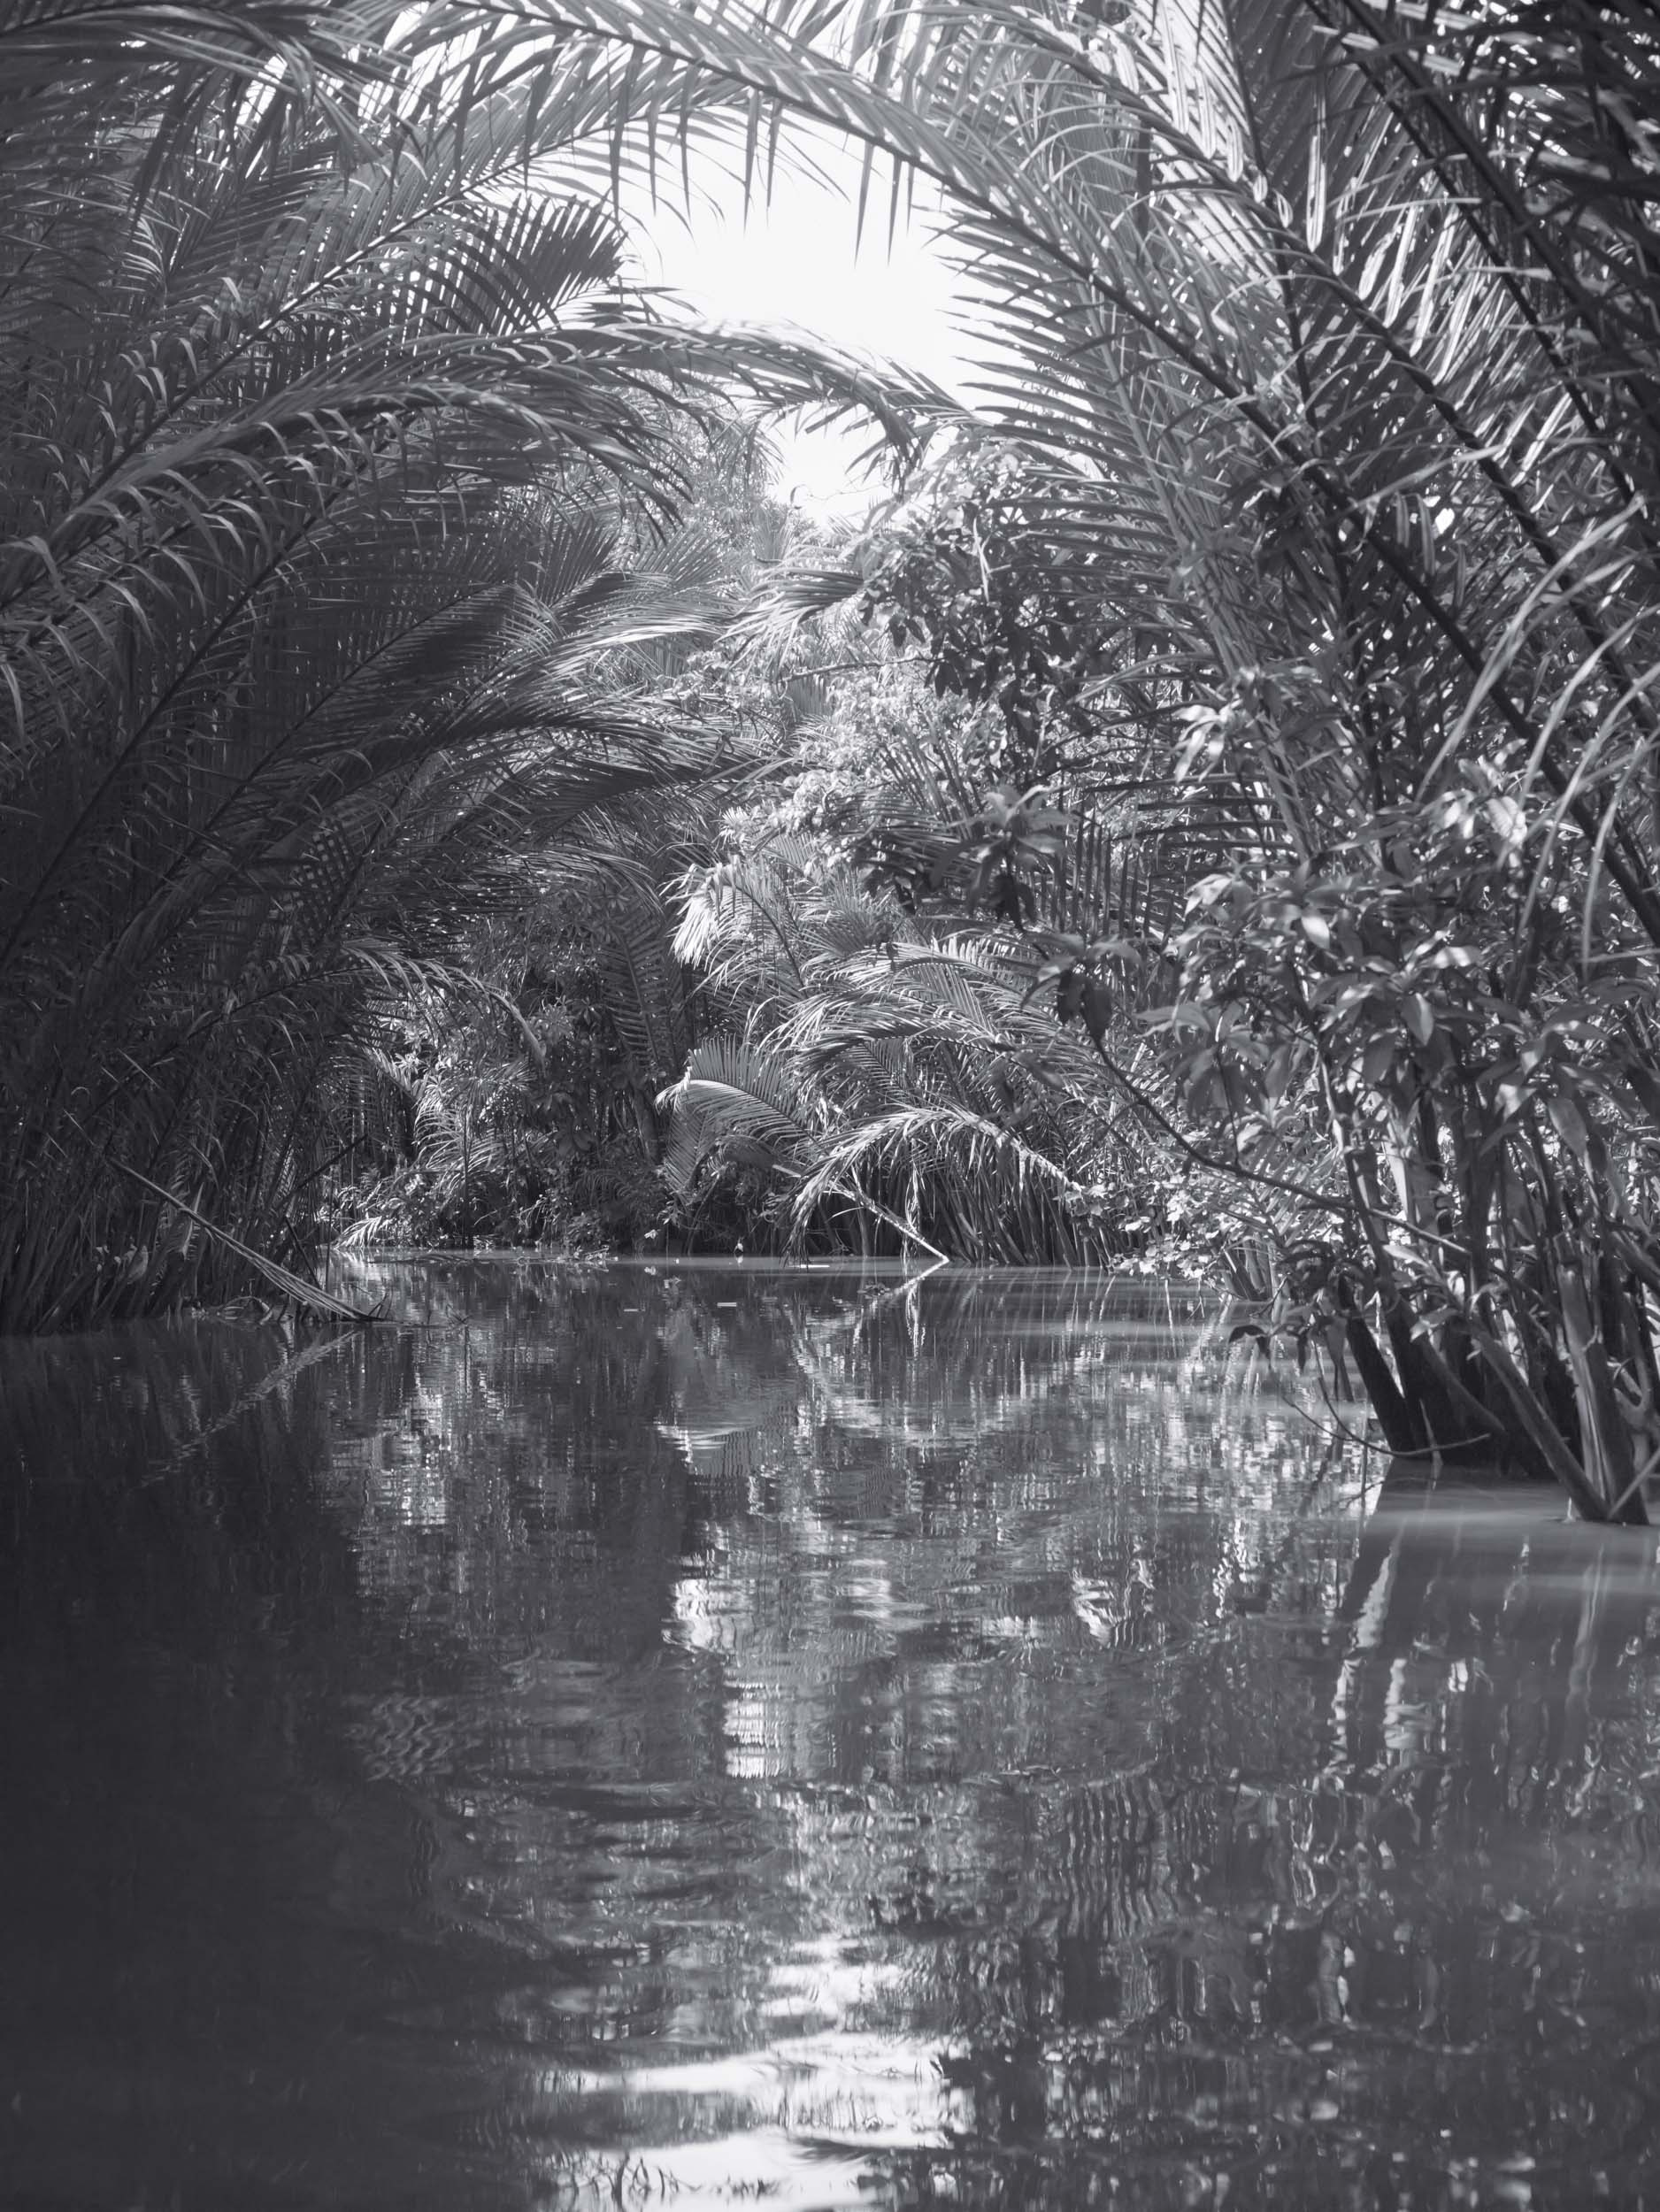 15_Asia_Mekong_Delta_Water_Cocos_322